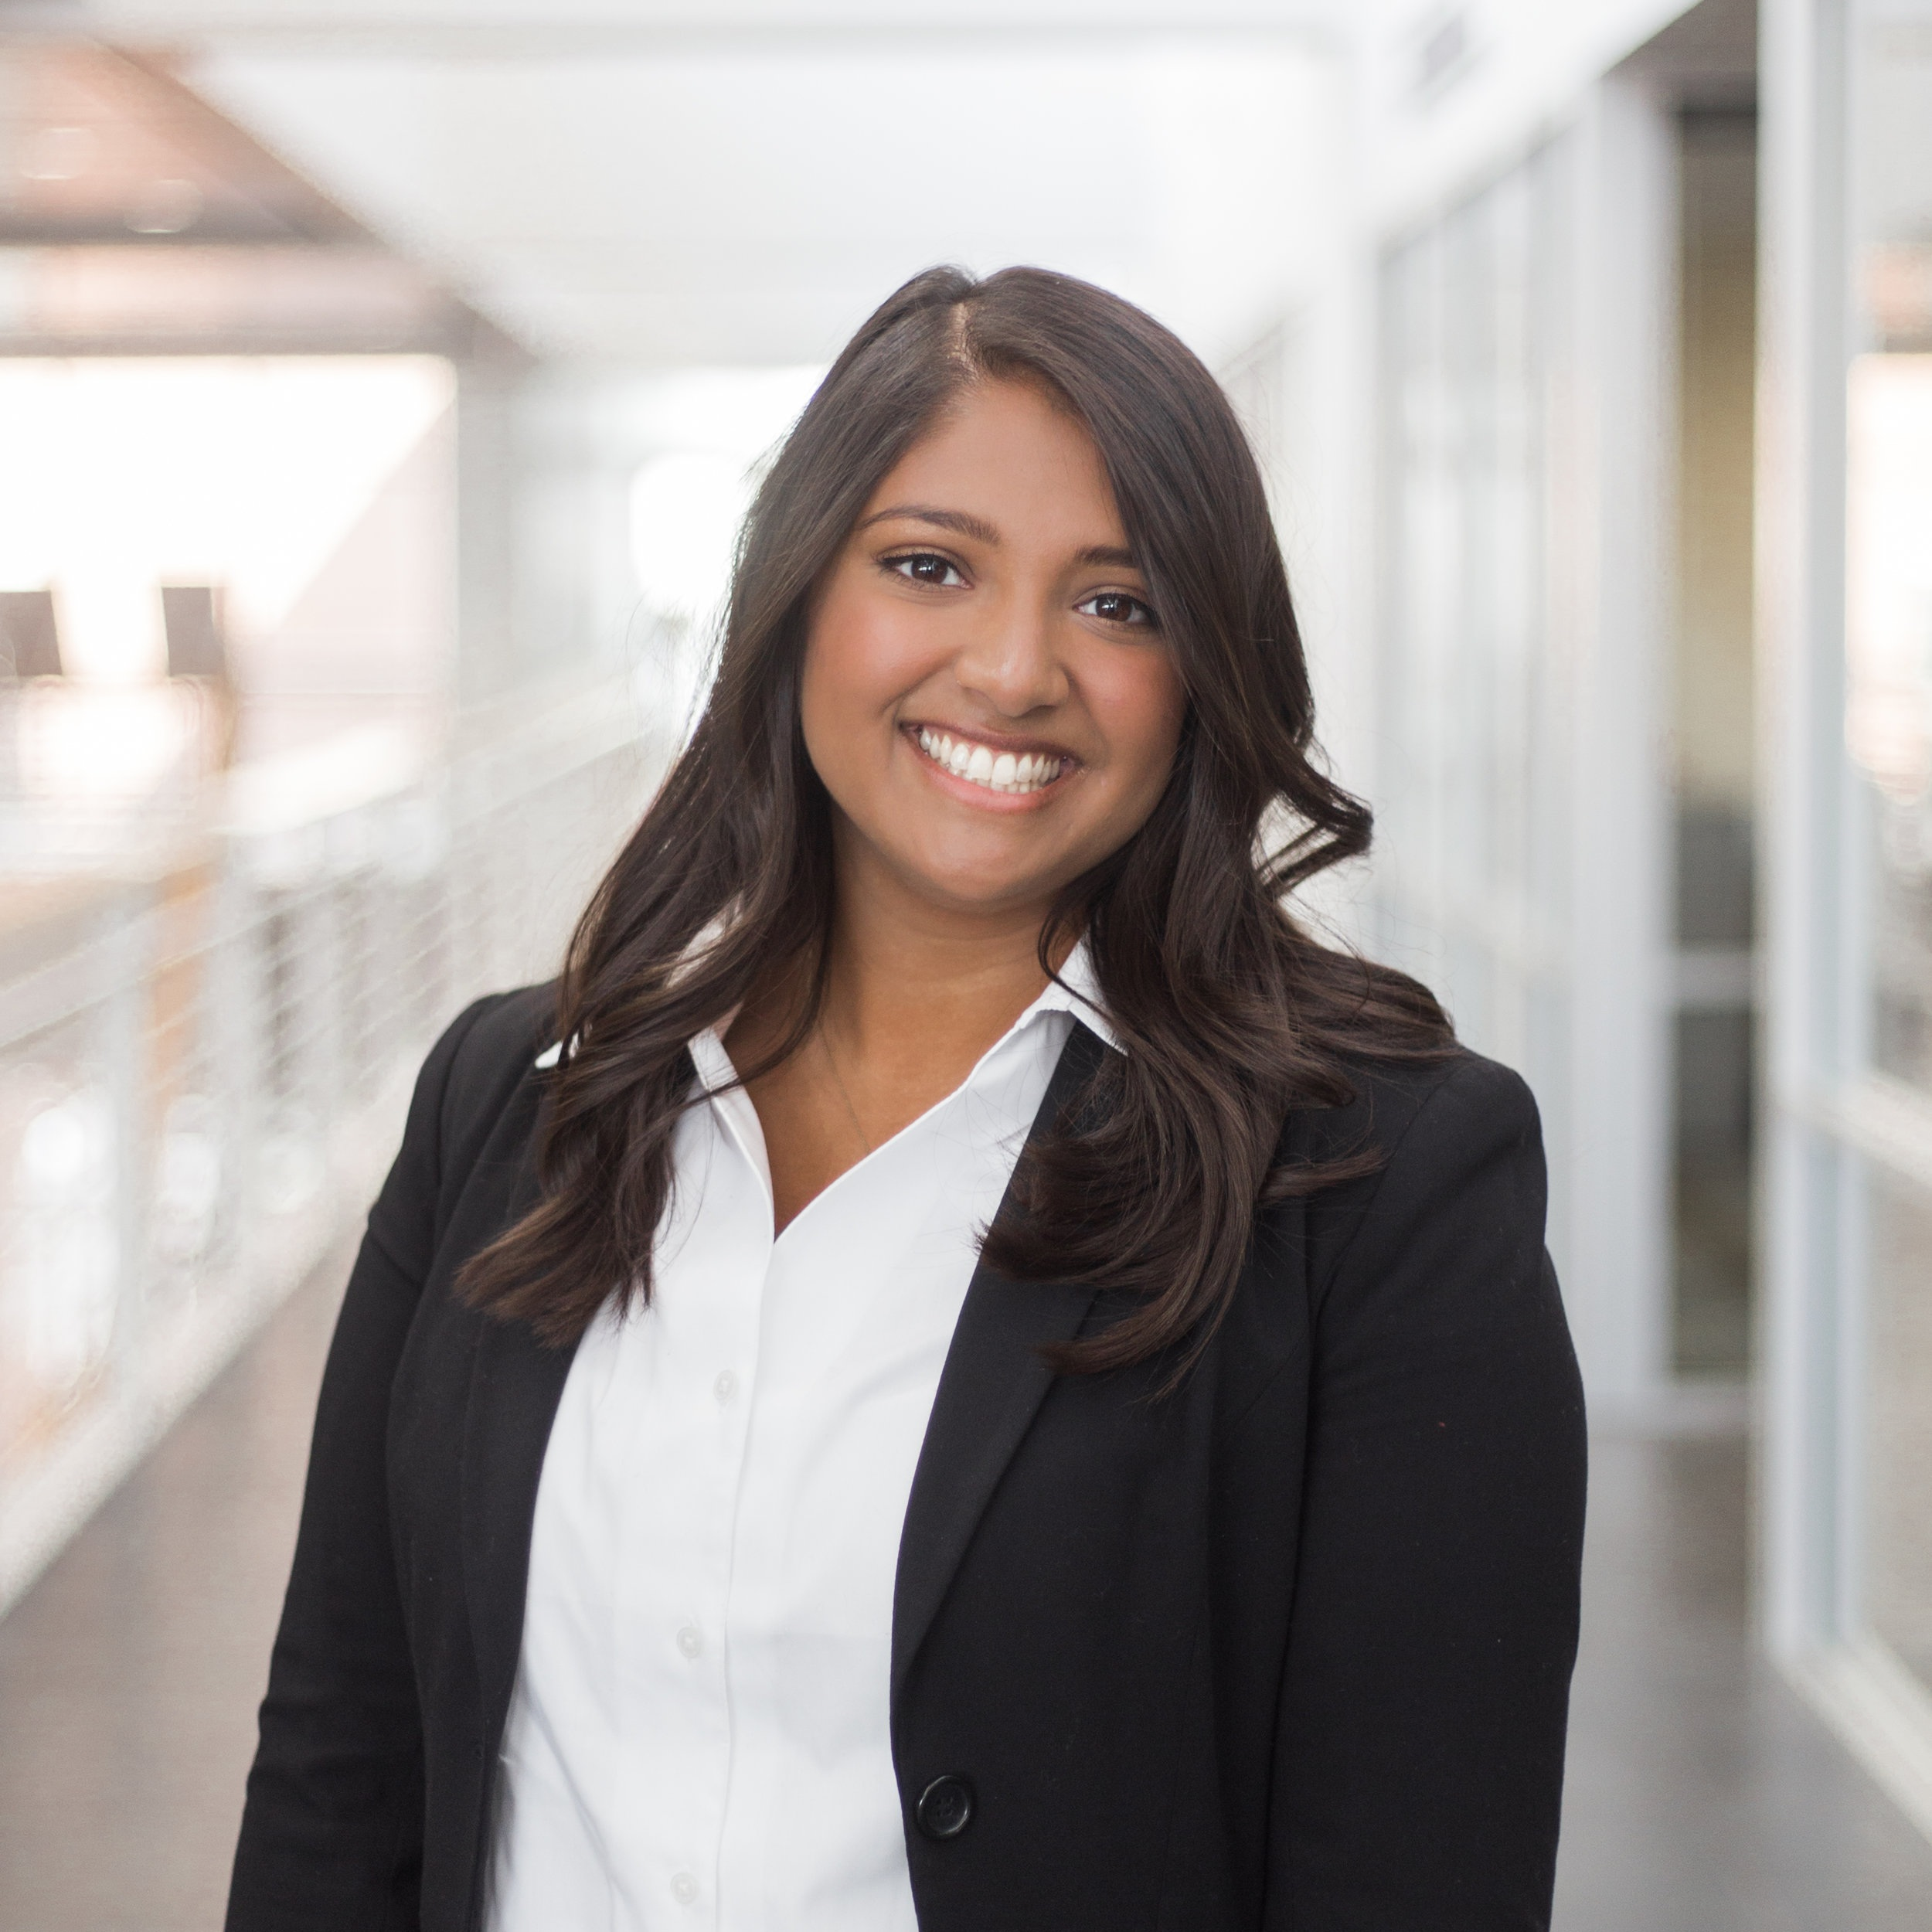 Aekta Mouli - AnalystBSB '20, International Business, MIS, and Marketing